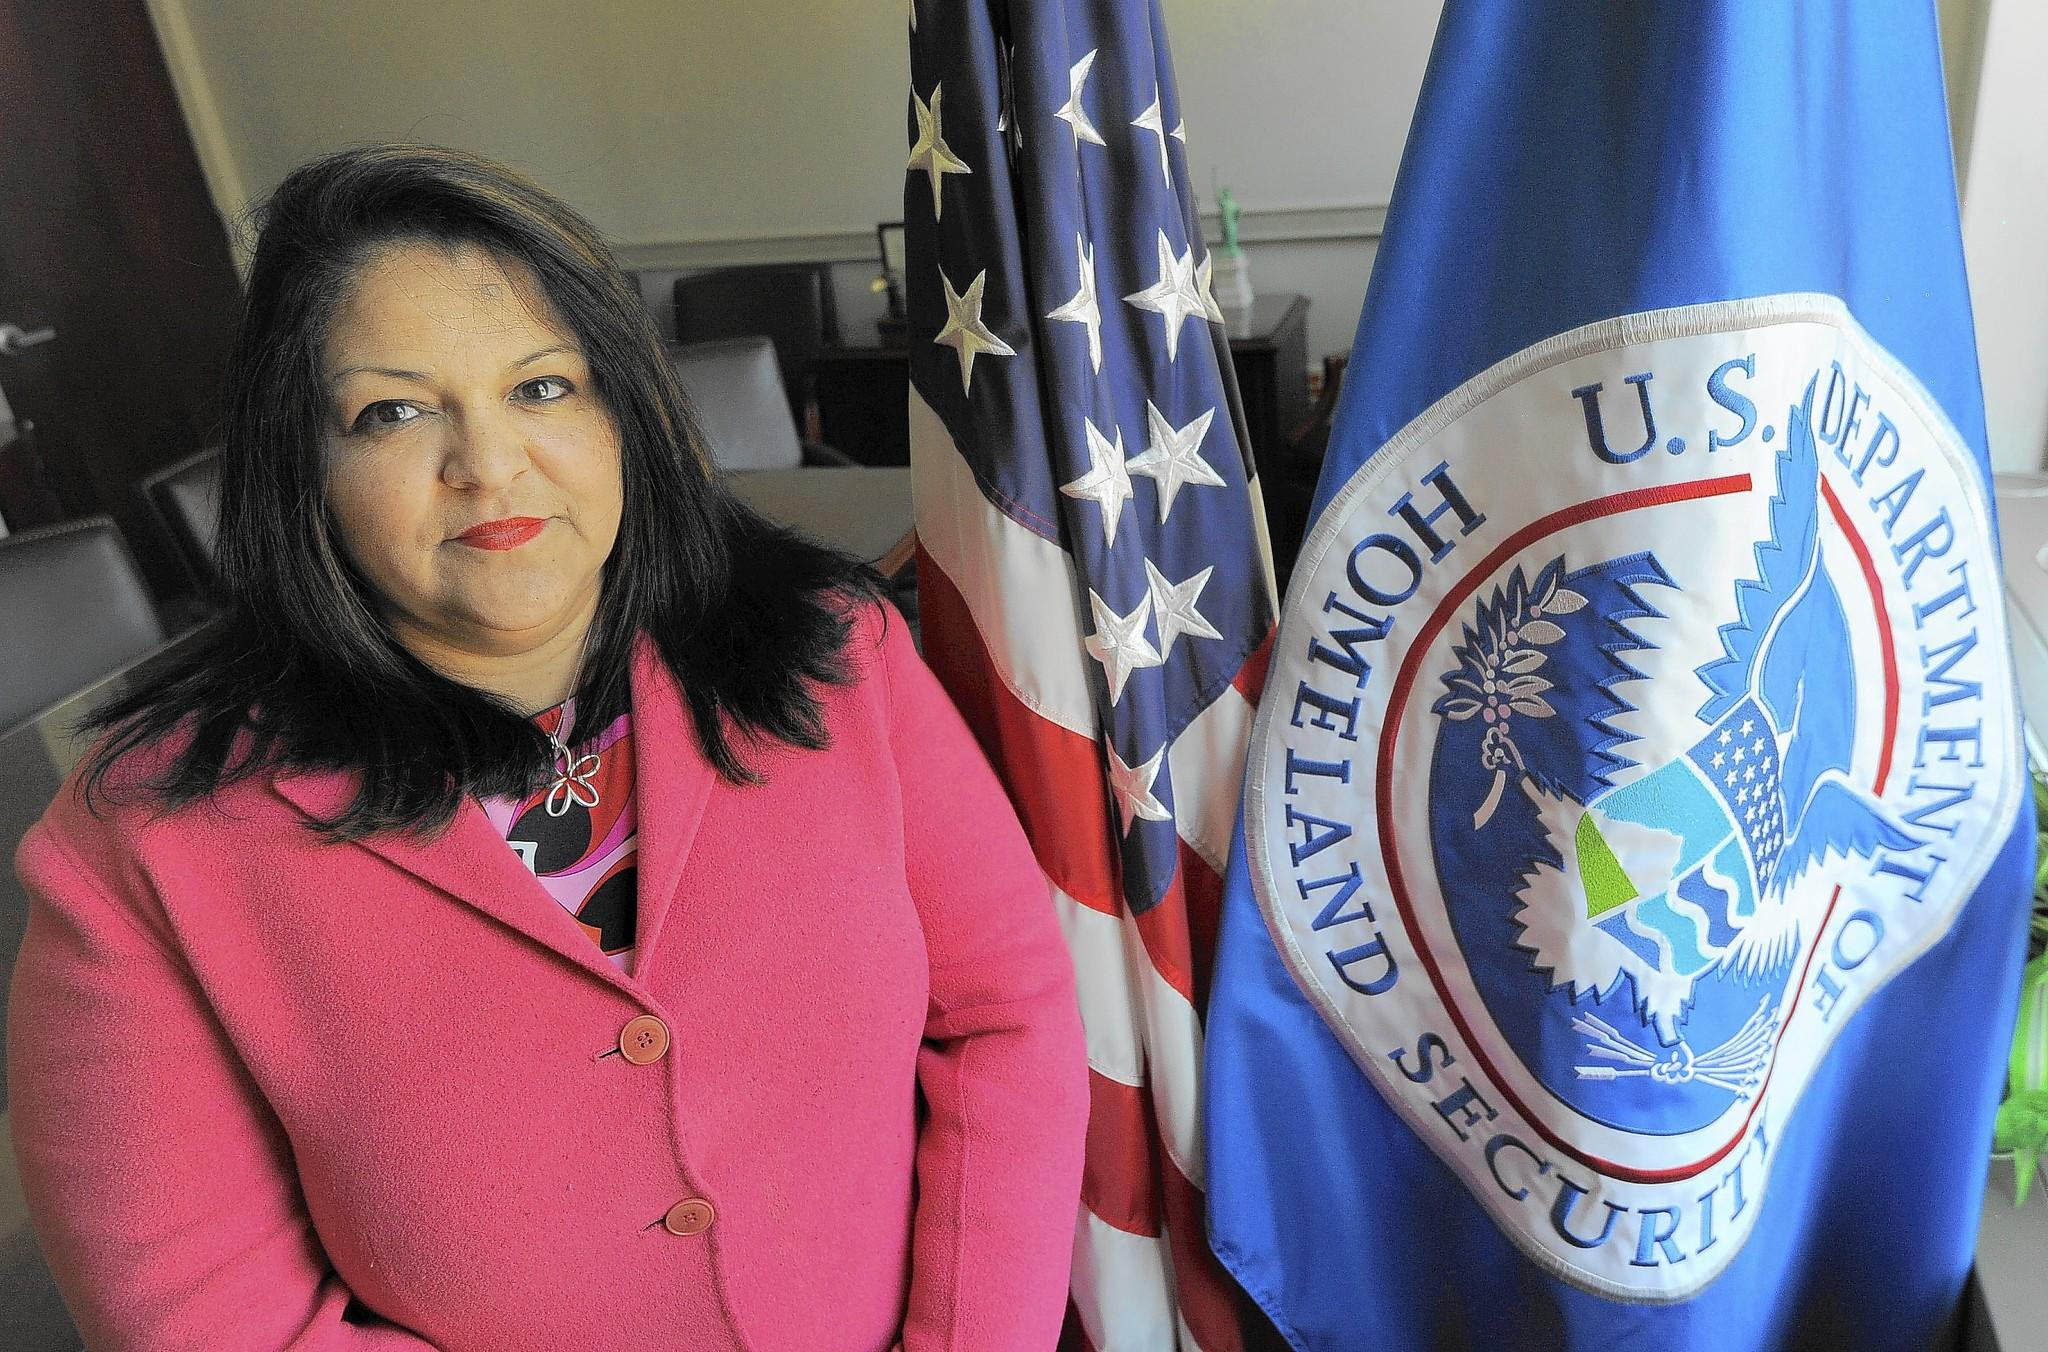 Dorothy Herrera-Niles, director of enforcement and removal operations at the U.S. Immigration and Customs Enforcement field office in Baltimore, says she tries to be a role model for younger employees.